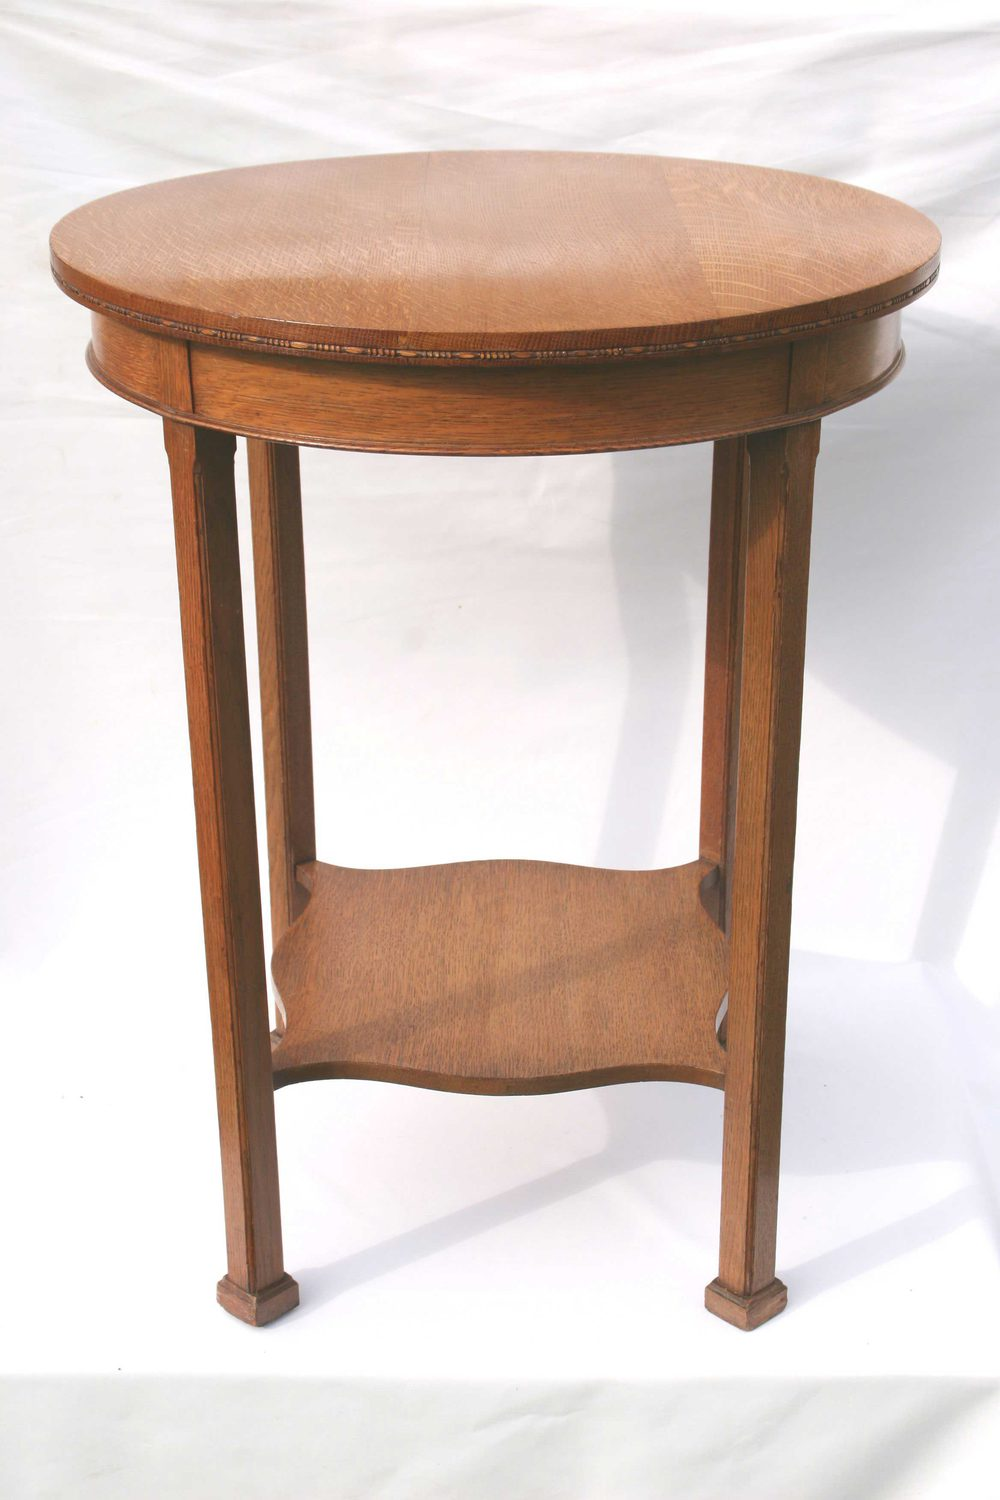 Waring and gillow arts and crafts oak side table for Arts and crafts side table